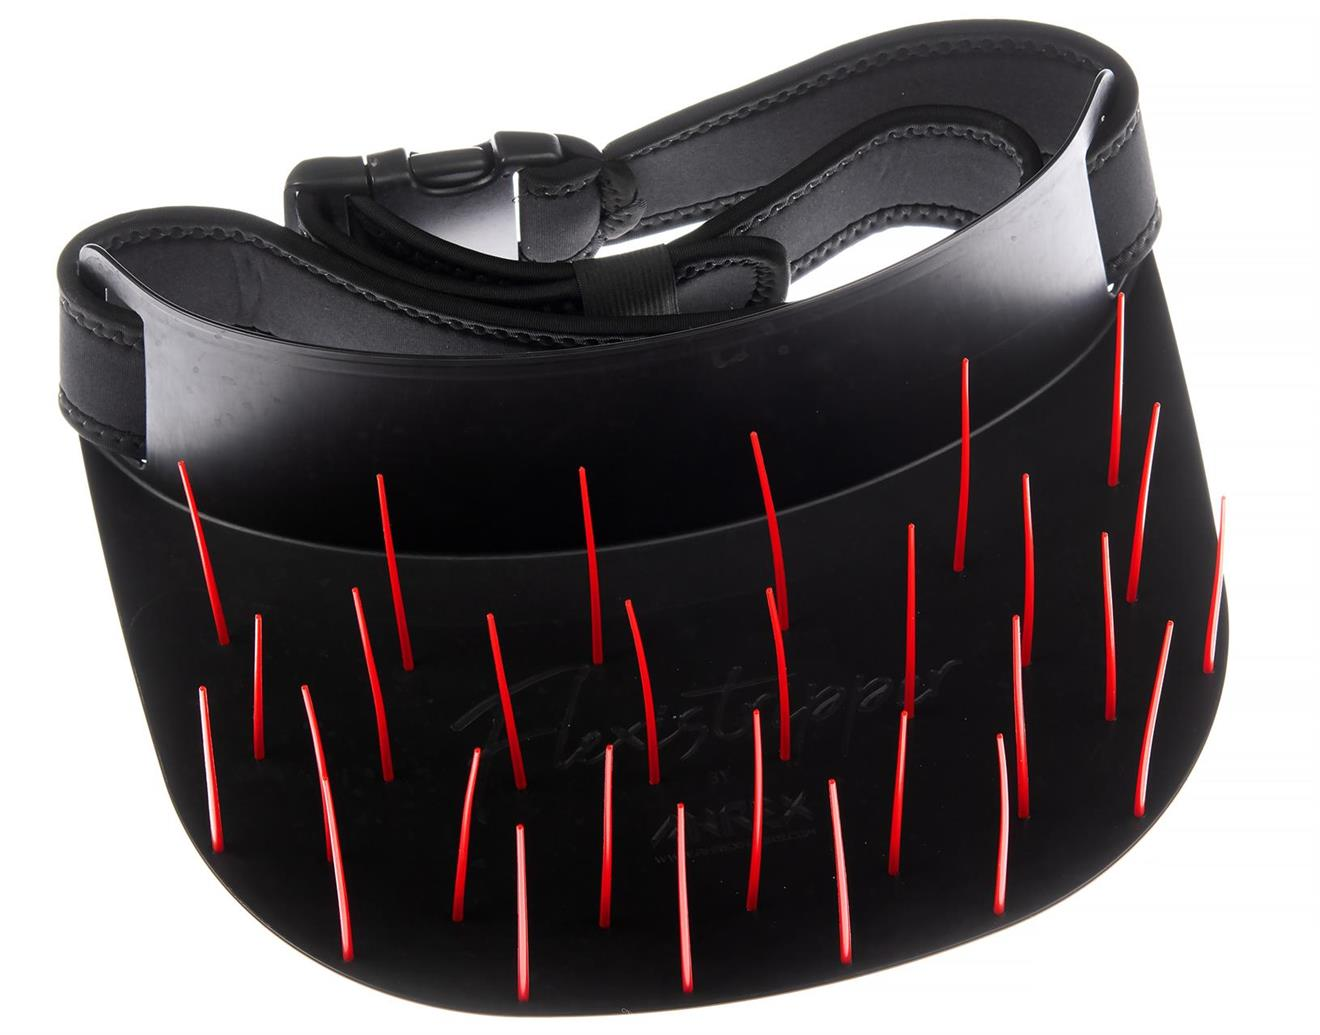 Ahrex Flexistripper - BLACK with Red Pegs w/125 cm/50 inches